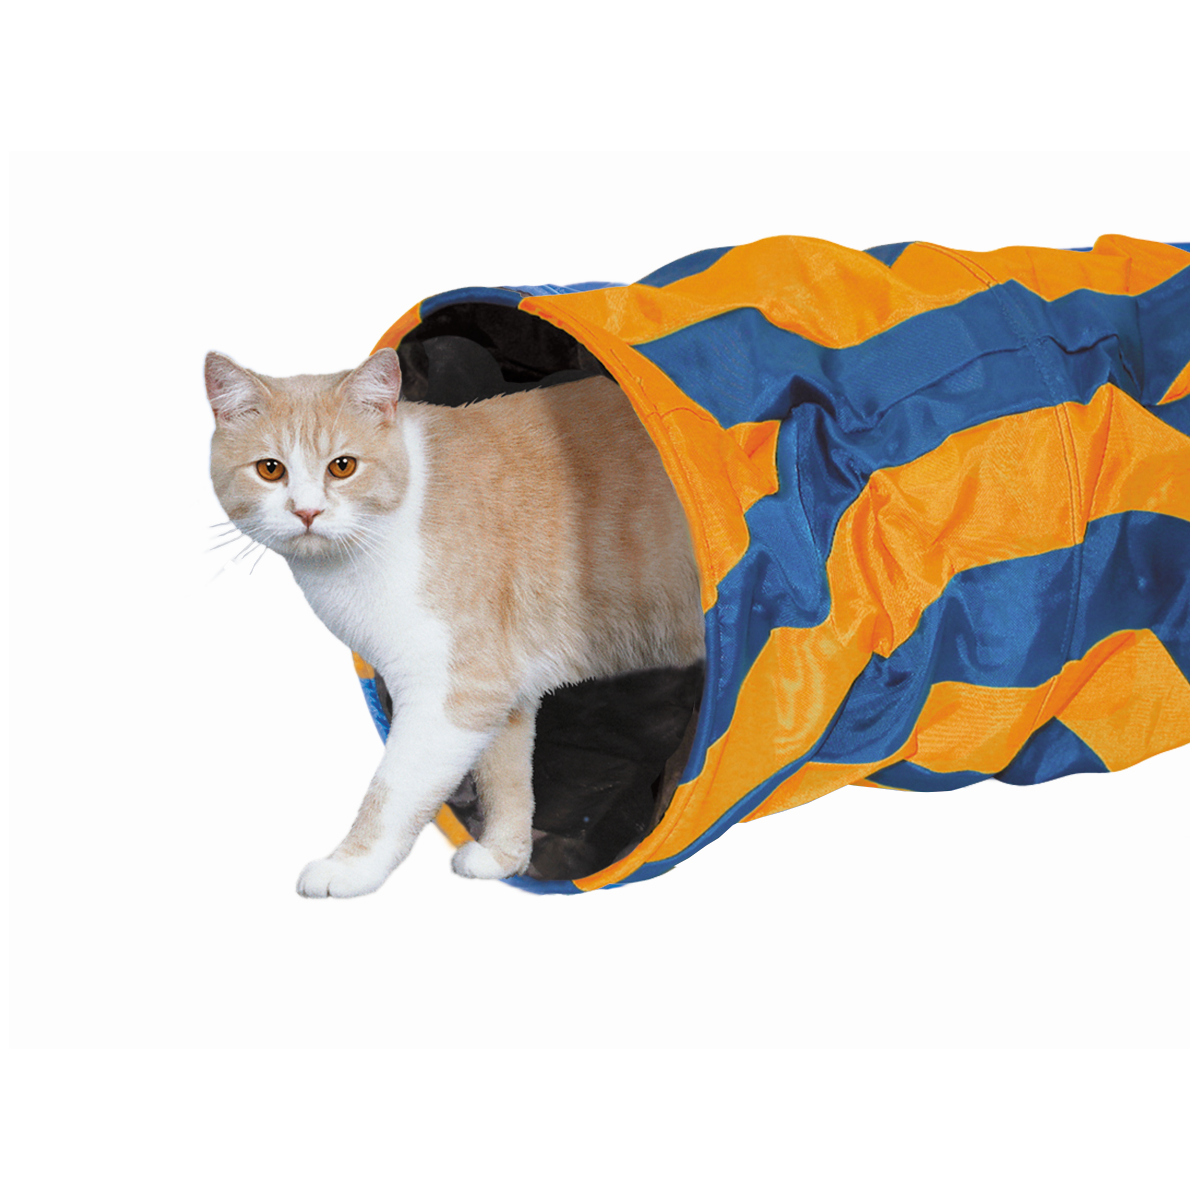 NB KATTEN TUNNEL NYLON 50CM 00001